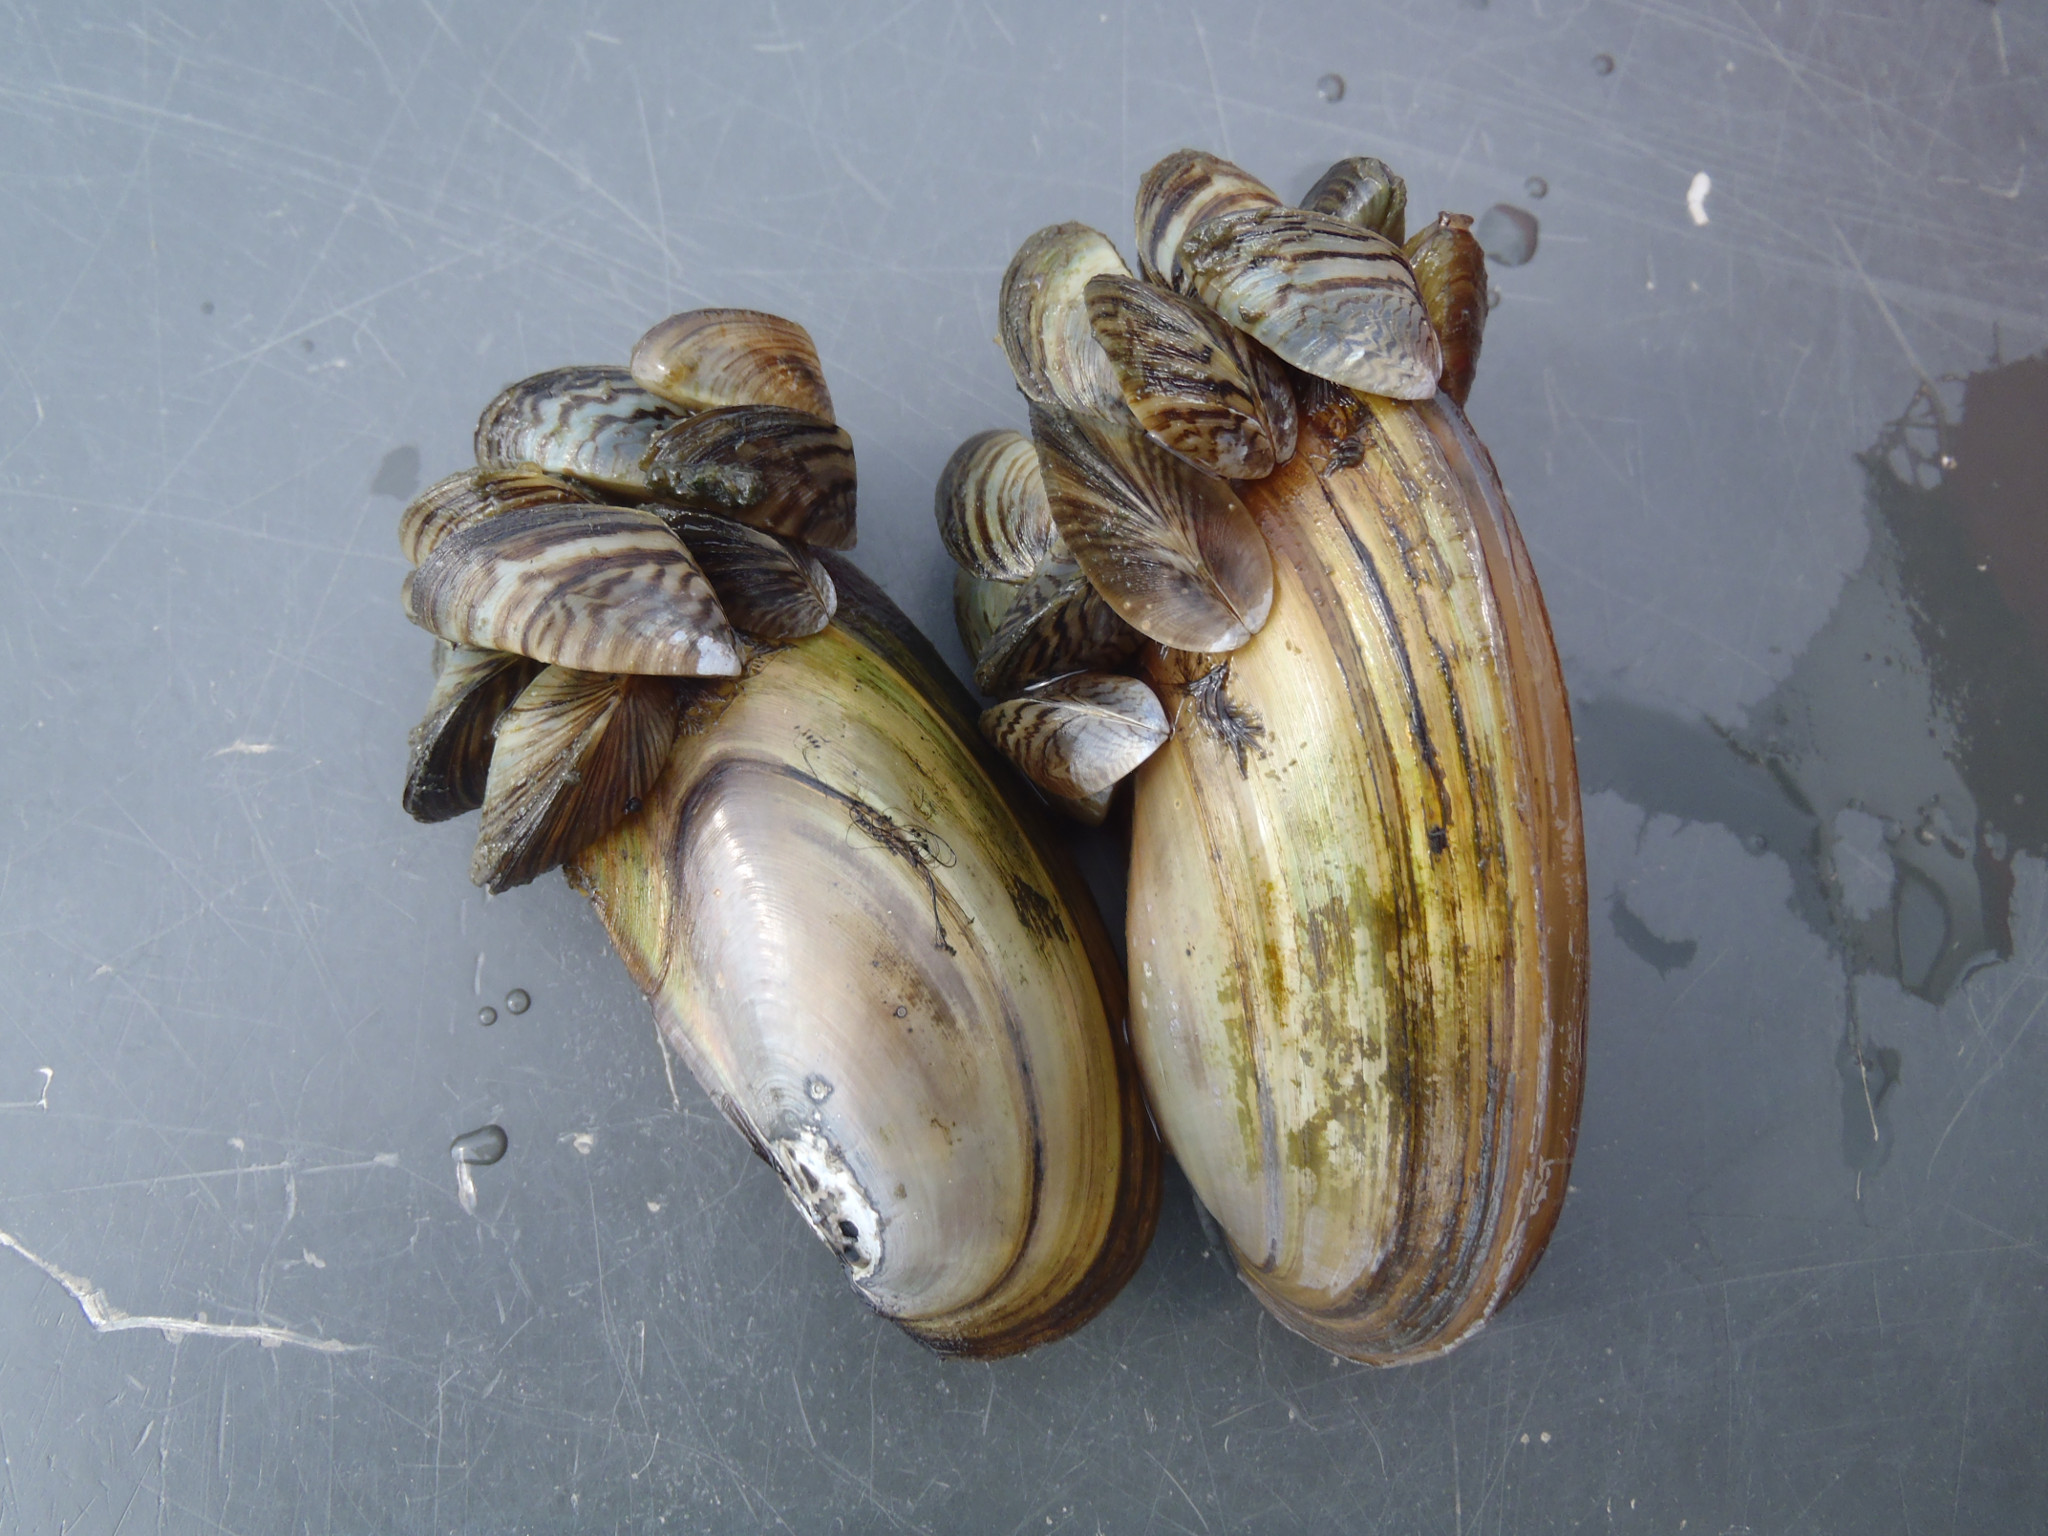 Native mussels slowly smothered by the colony of invasive zebra mussels covering the opening of their shells.